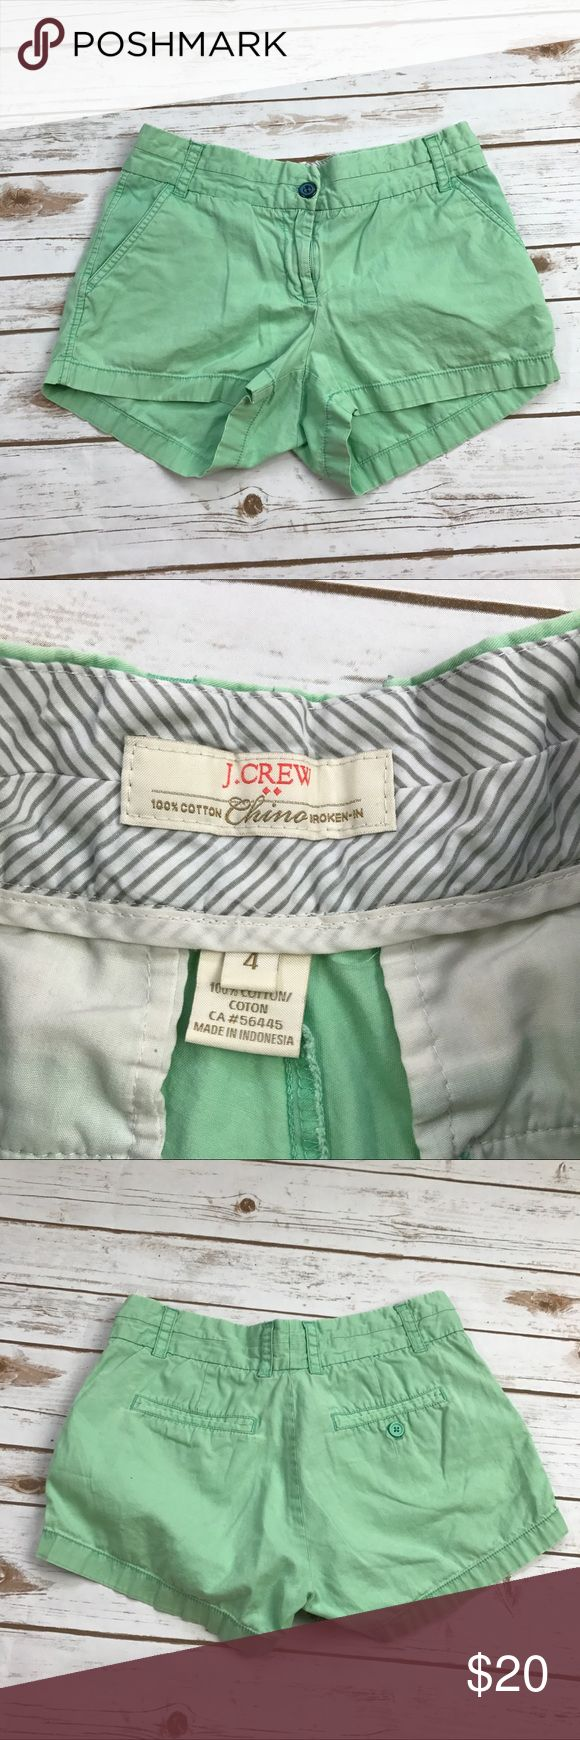 J. Crew mint green chino shorts Size 4 in very good condition. Cute mint green colored chino shorts! Waist- 15 straight across, inseam- 2.5, rise- 9 *** no modeling or trades! J. Crew Shorts